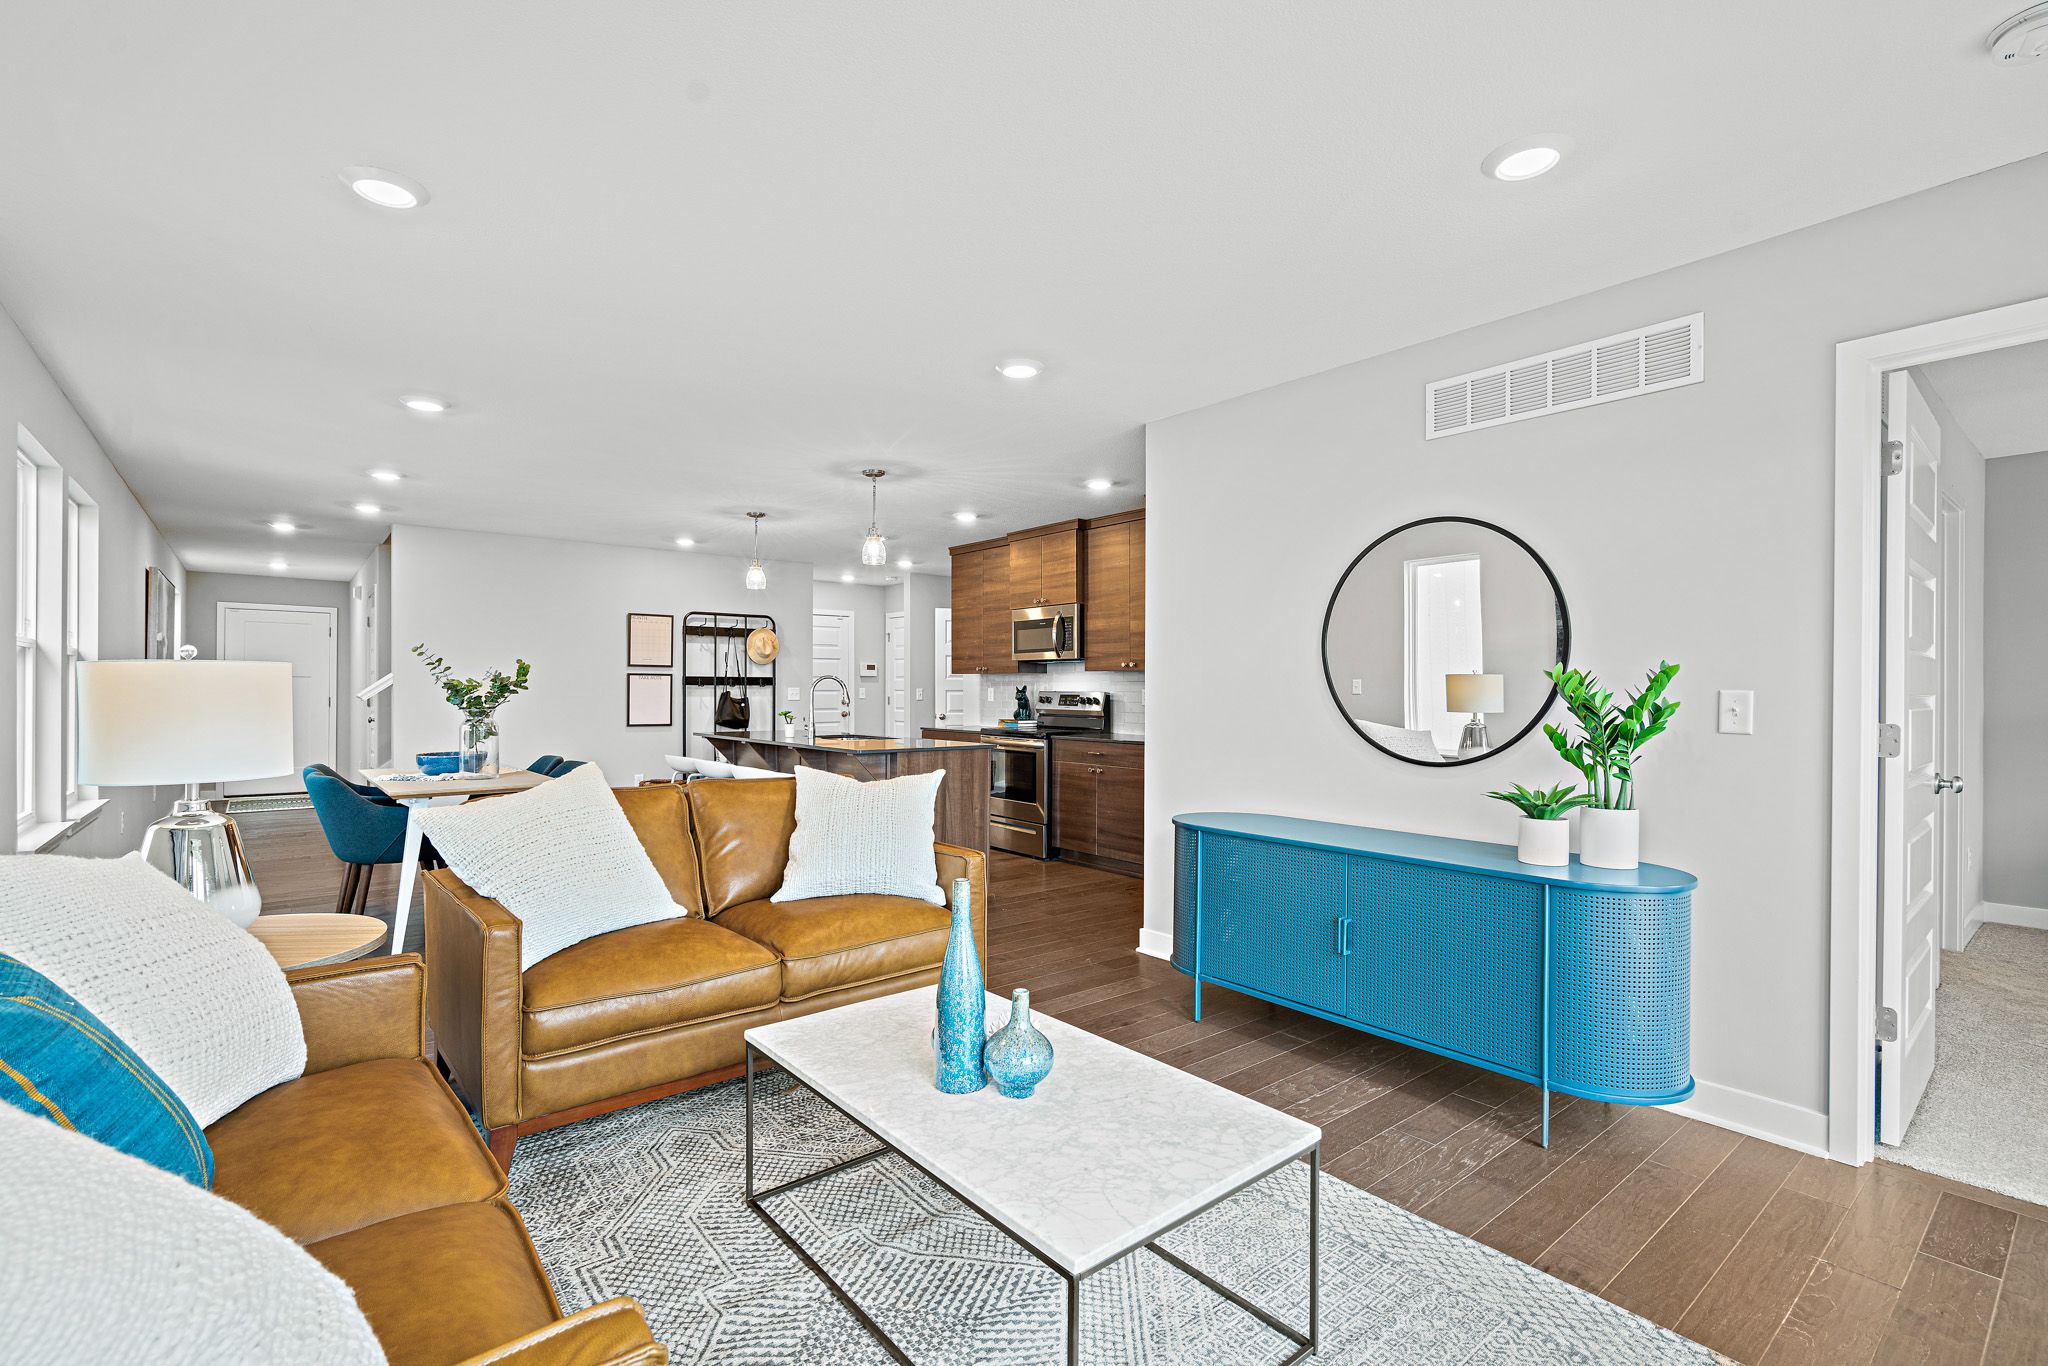 Living Area featured in the sienna By clover & hive in Kansas City, MO